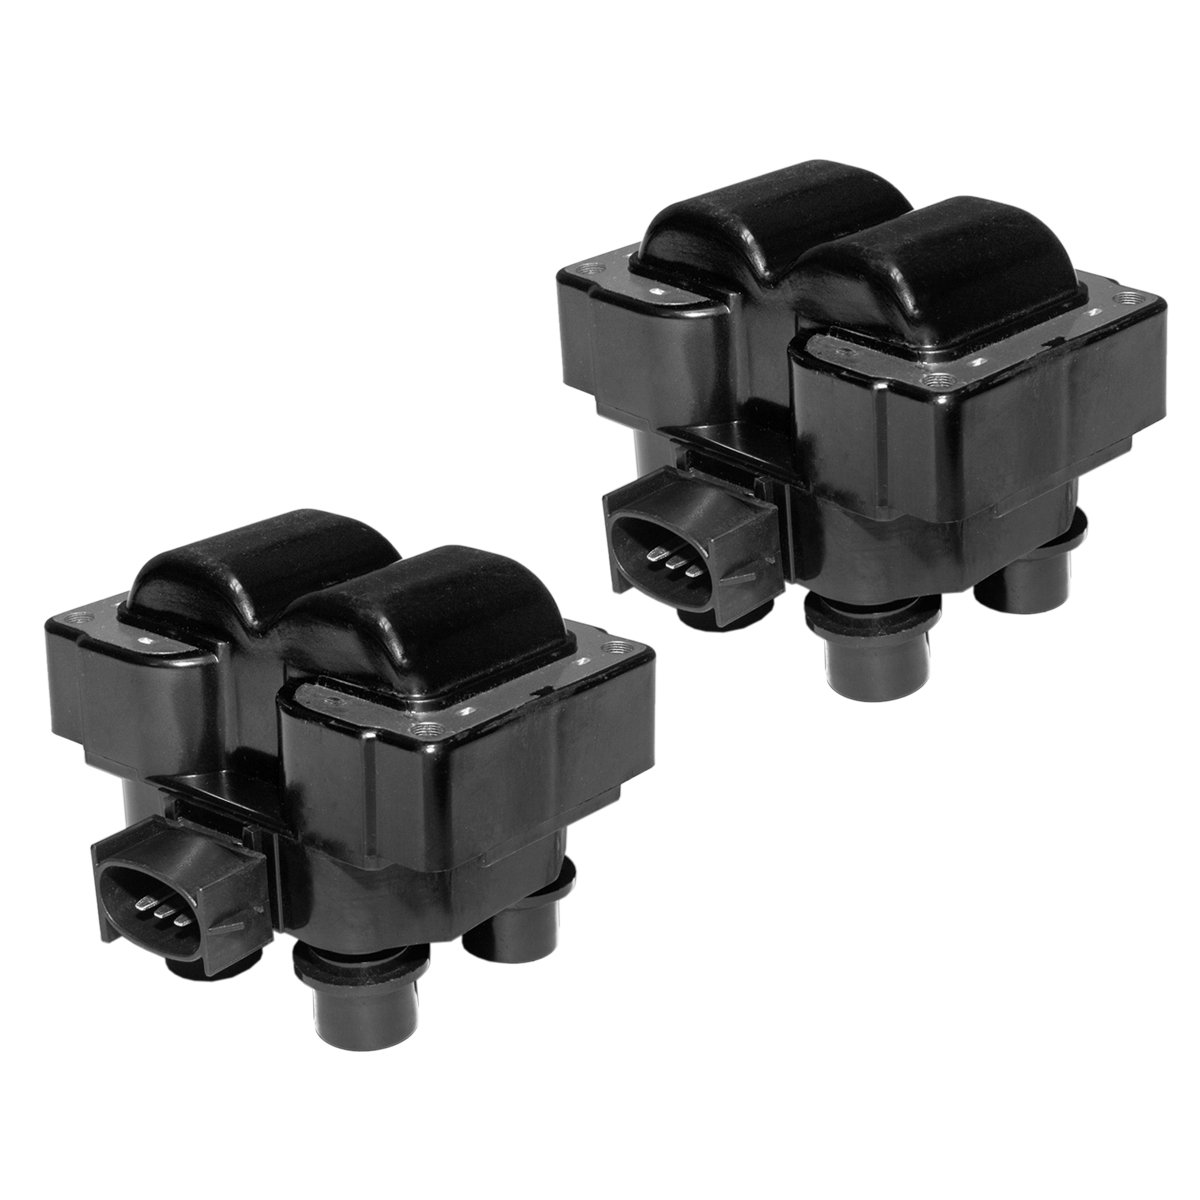 Combo pack of Ignition Coils for Ford Lincoln Mercury C924 FD-487 FD487 DG530 Fd480 490 F510 5c1117 178-8222 E96 52-1967 FD487 DG523 19017116 DG435 DG449 DG454 DG457 DG458 DG460 DG461 (SET OF 2)